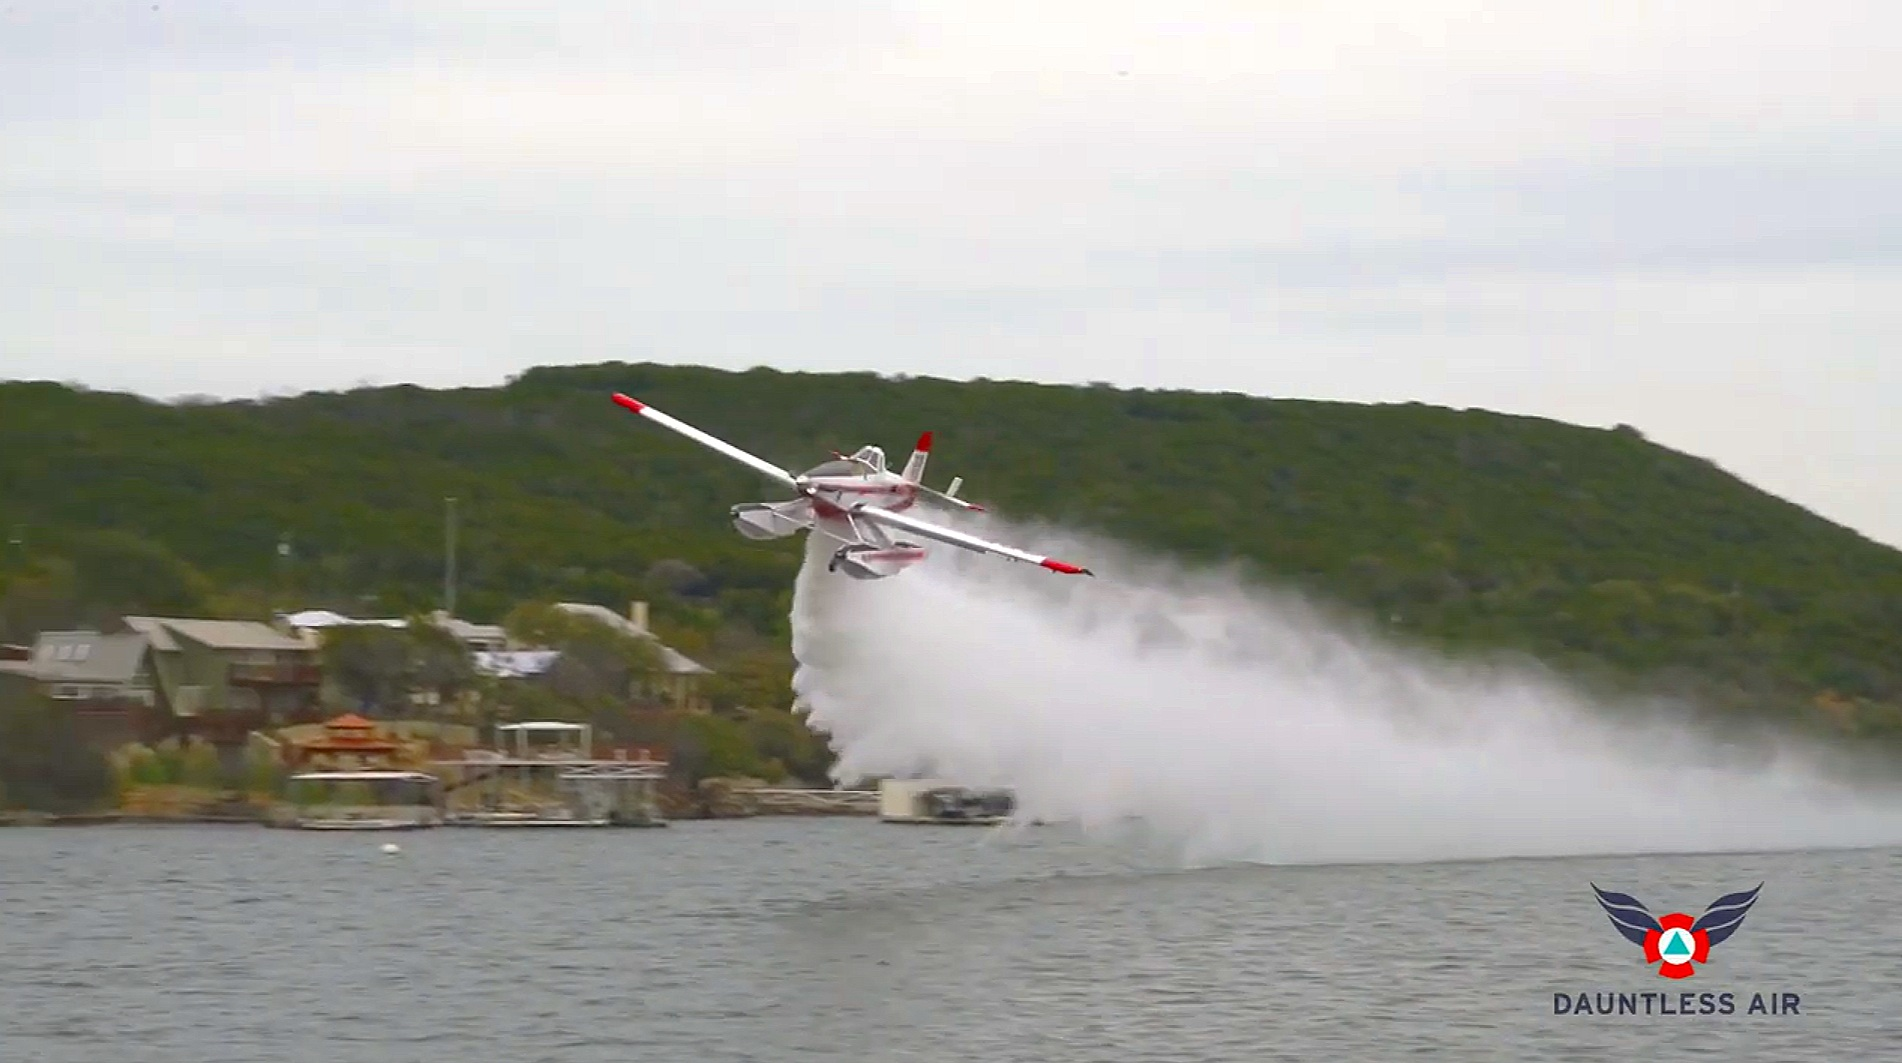 Fire Boss demo: Aerial firefighting tactics for rapid initial attack on a wildfire